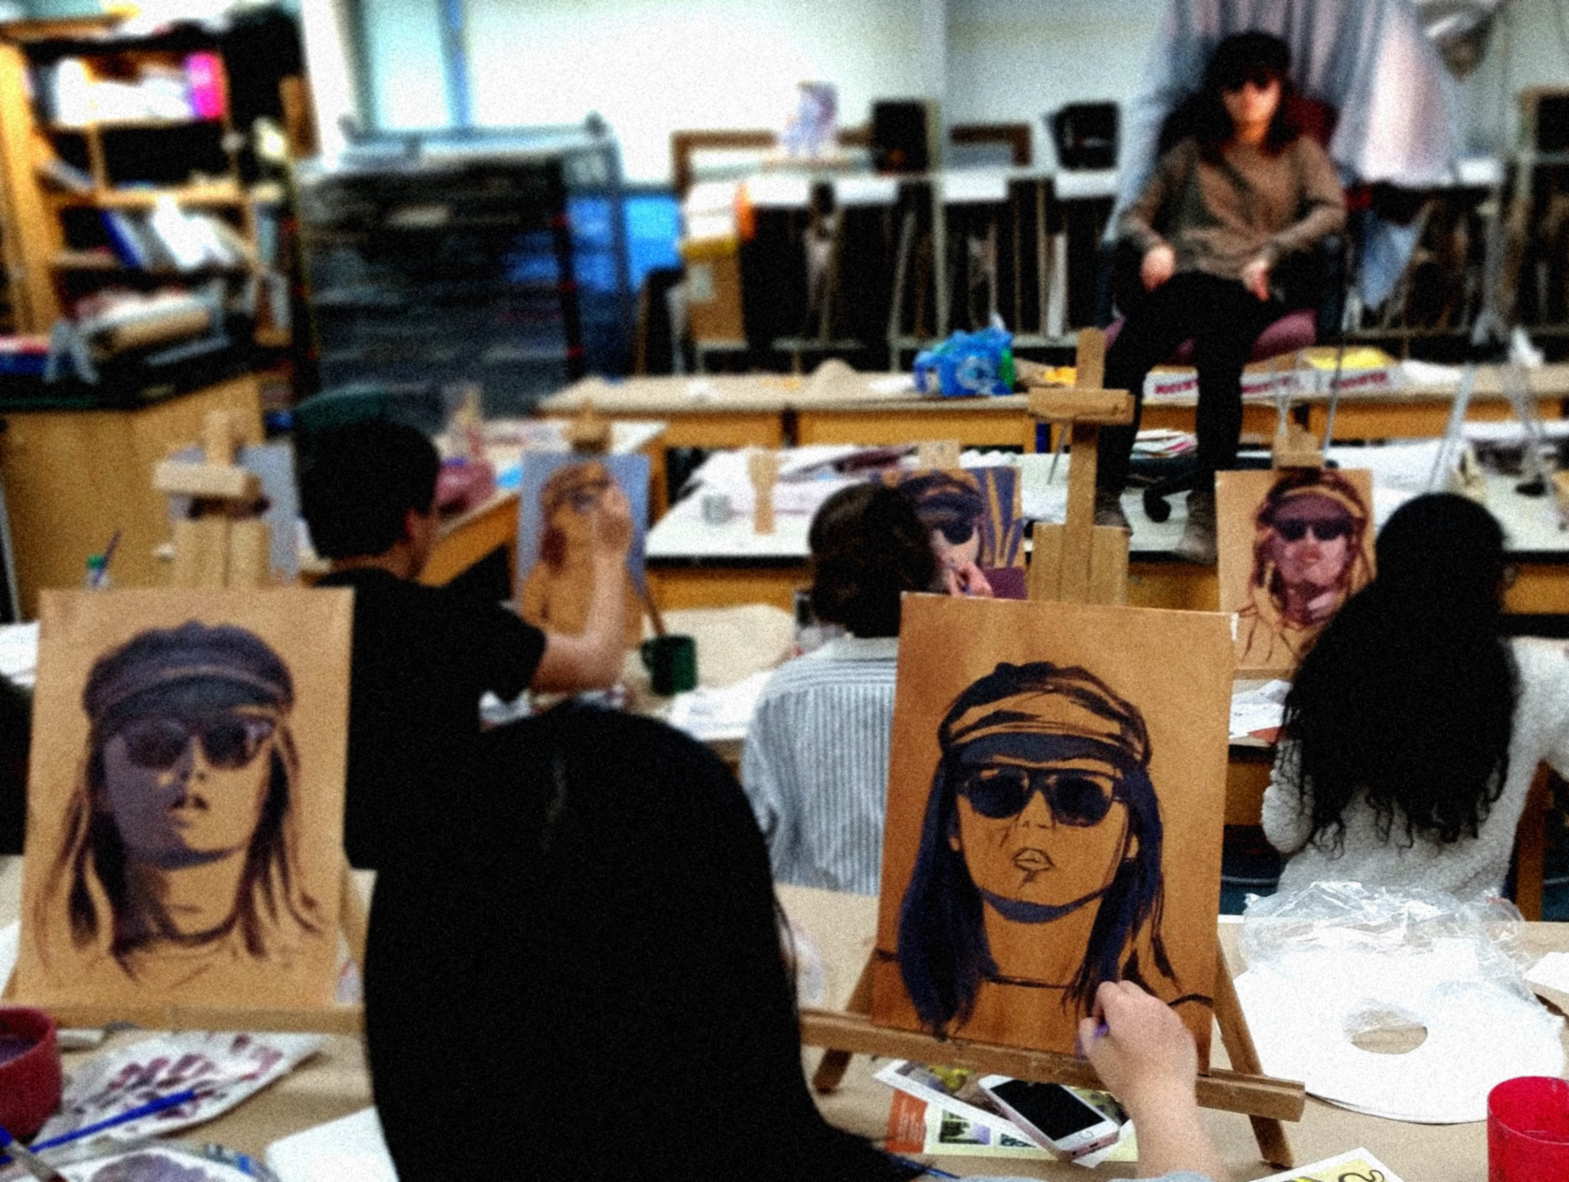 Students participating in a four hour studio workshop in the early stages of a costumed portrait.